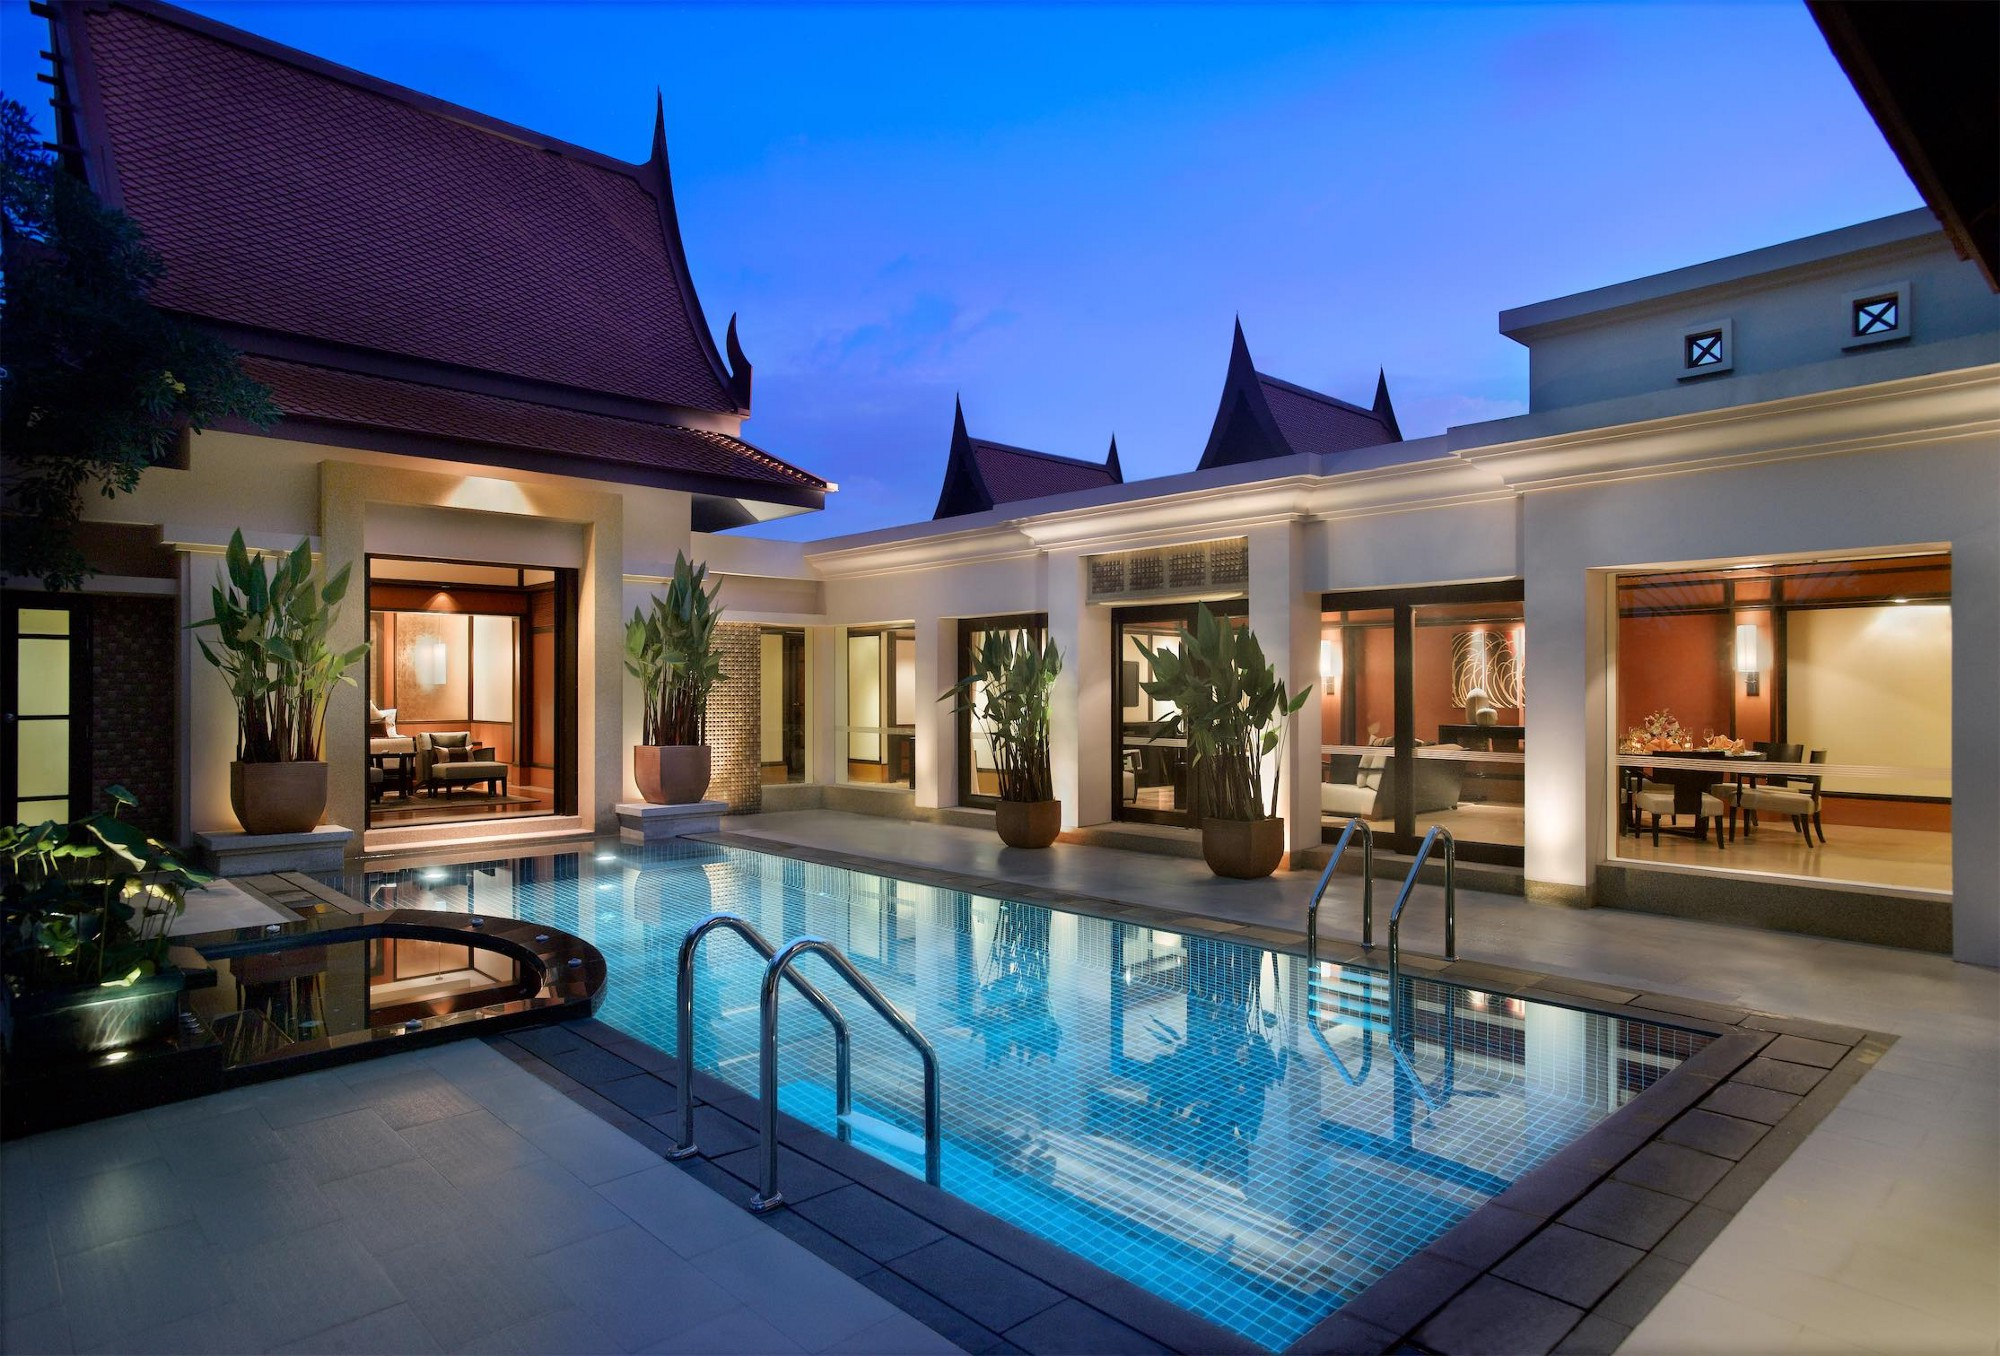 Banyan tree pool villa for Pool design villa